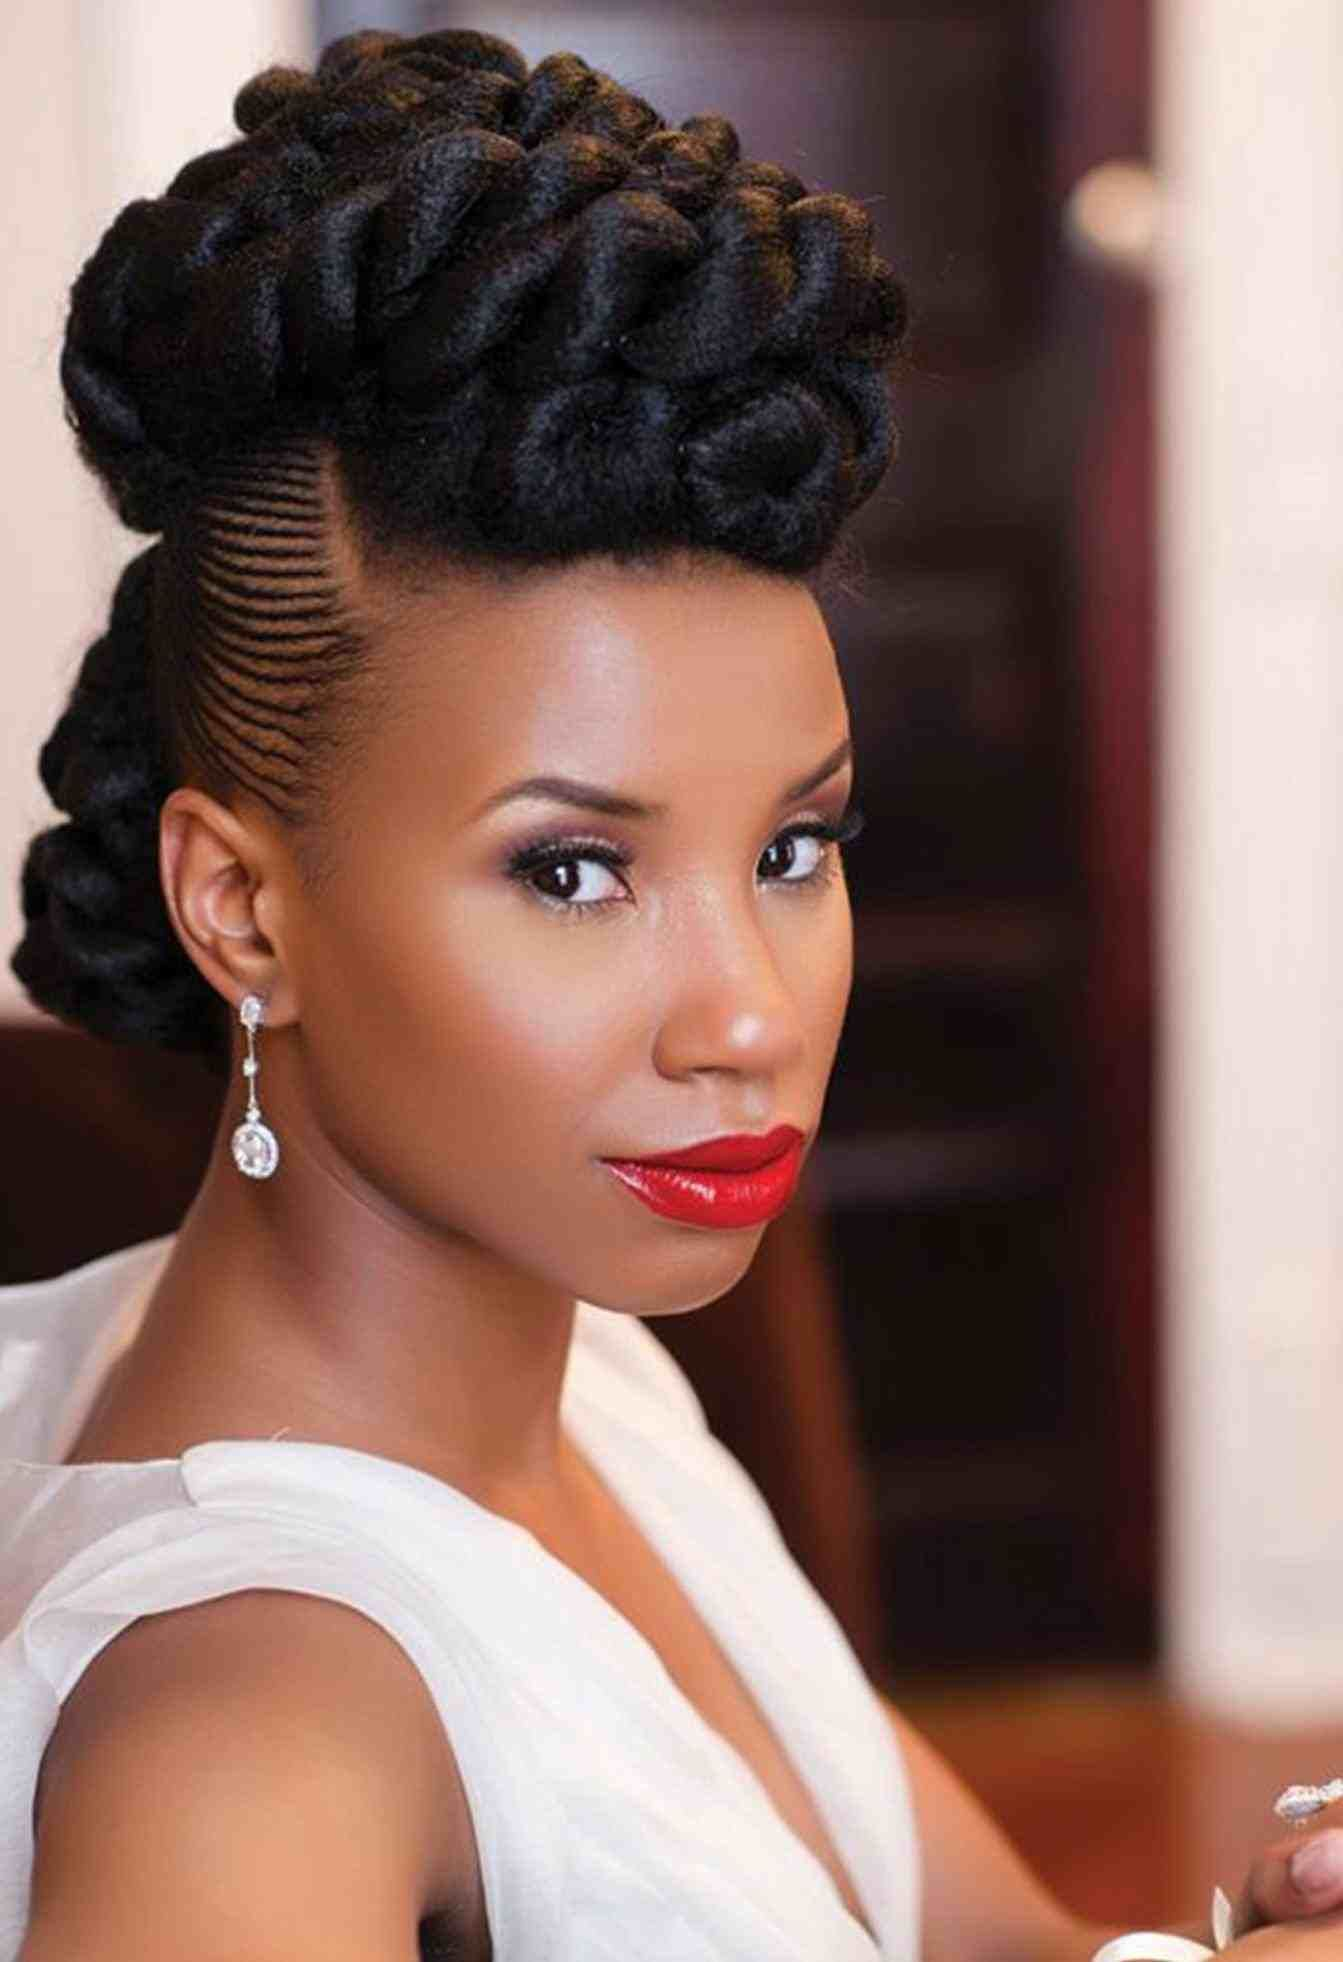 nigerian white wedding hairstyles | hair stylist and models